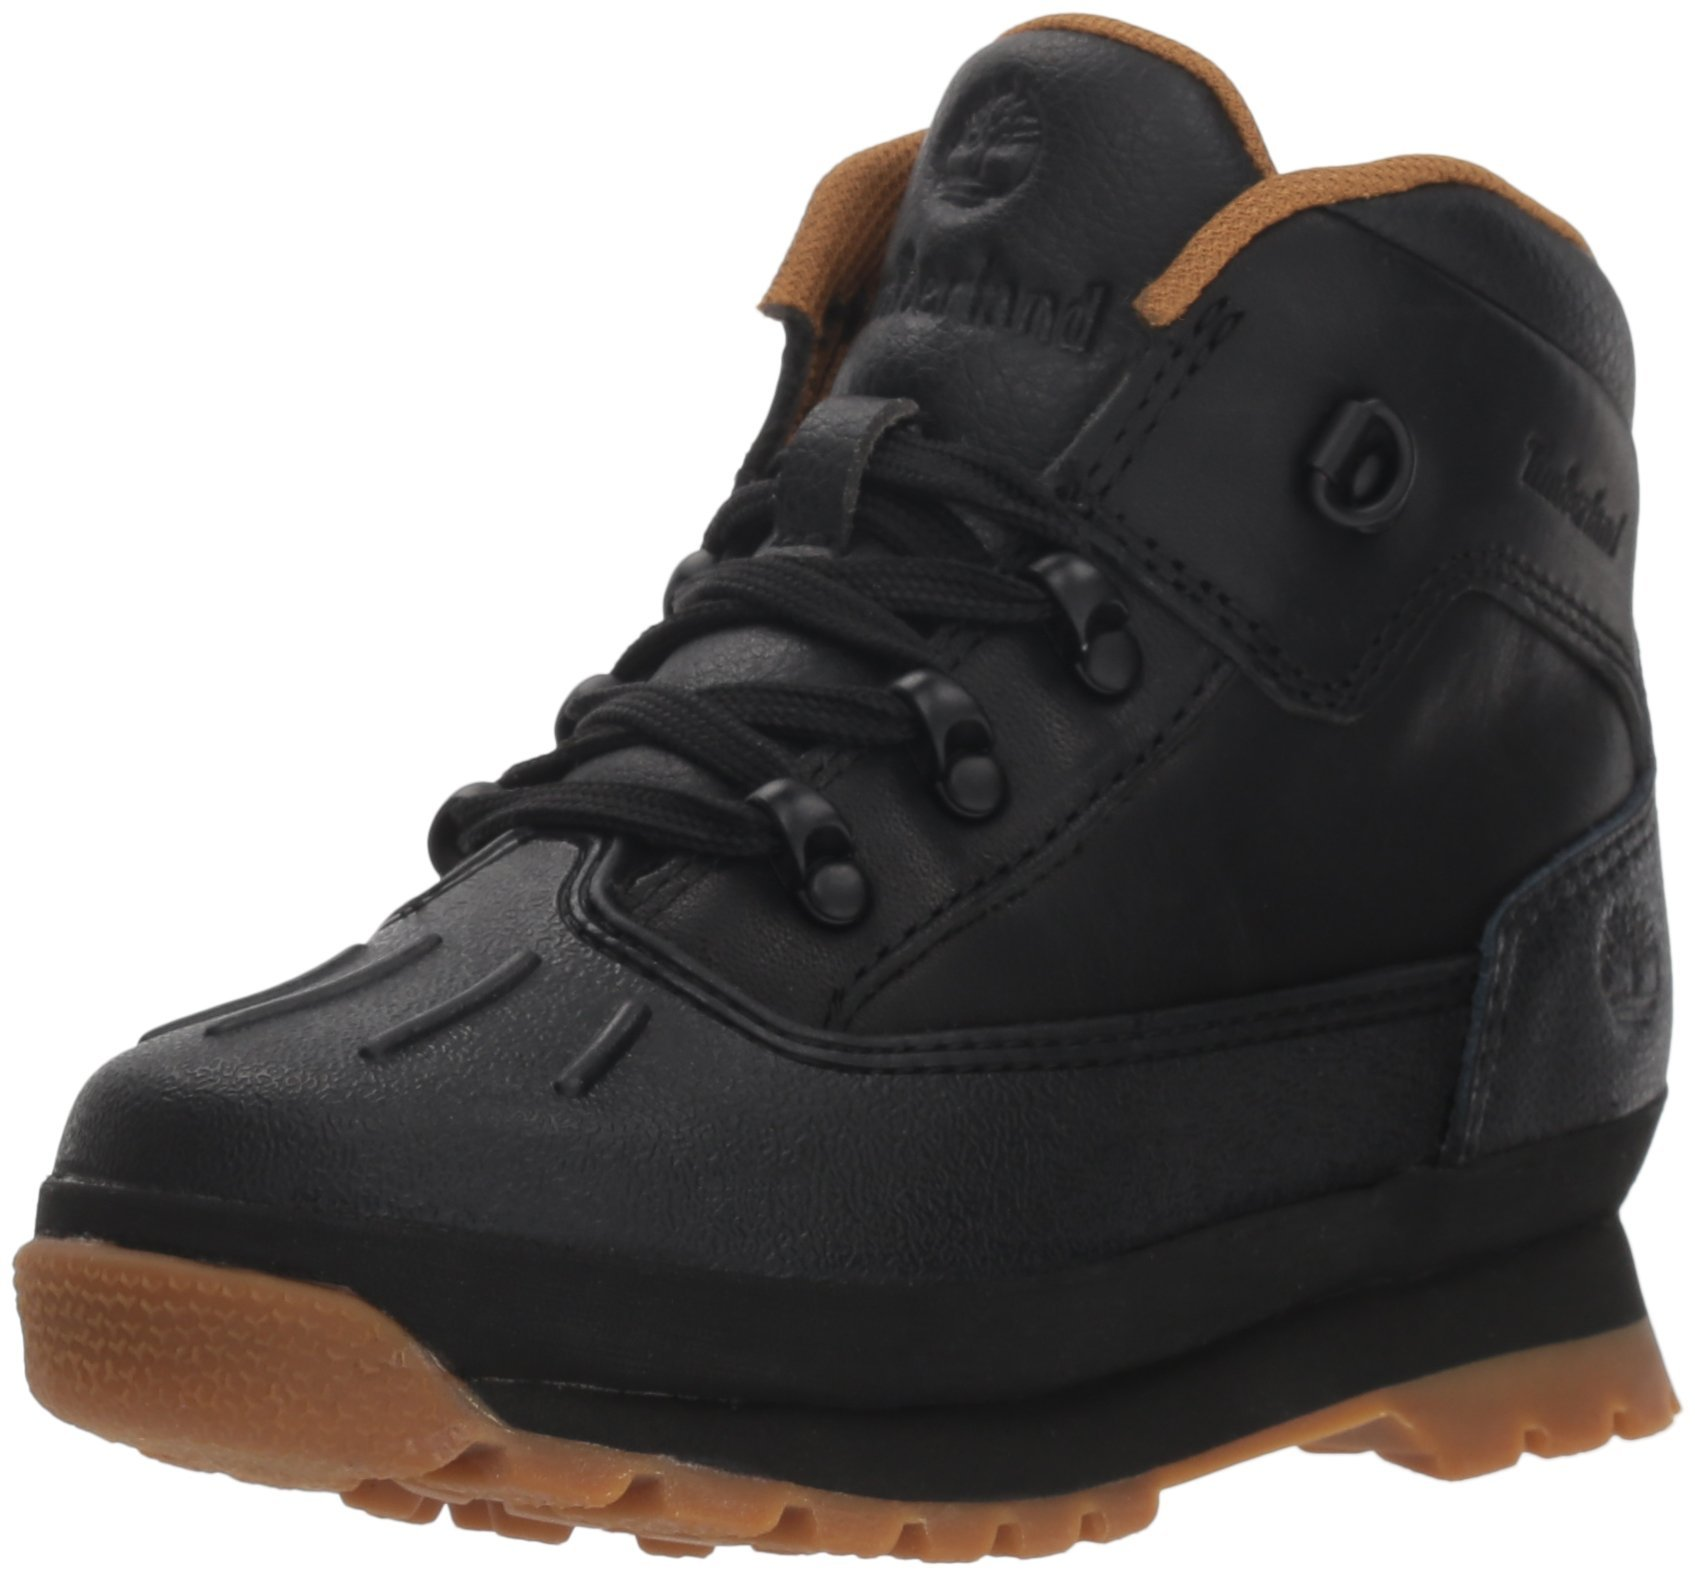 Timberland Baby Euro Hiker Shell Toe Fashion Boot, Black Full Grain, 10 Medium US Toddler